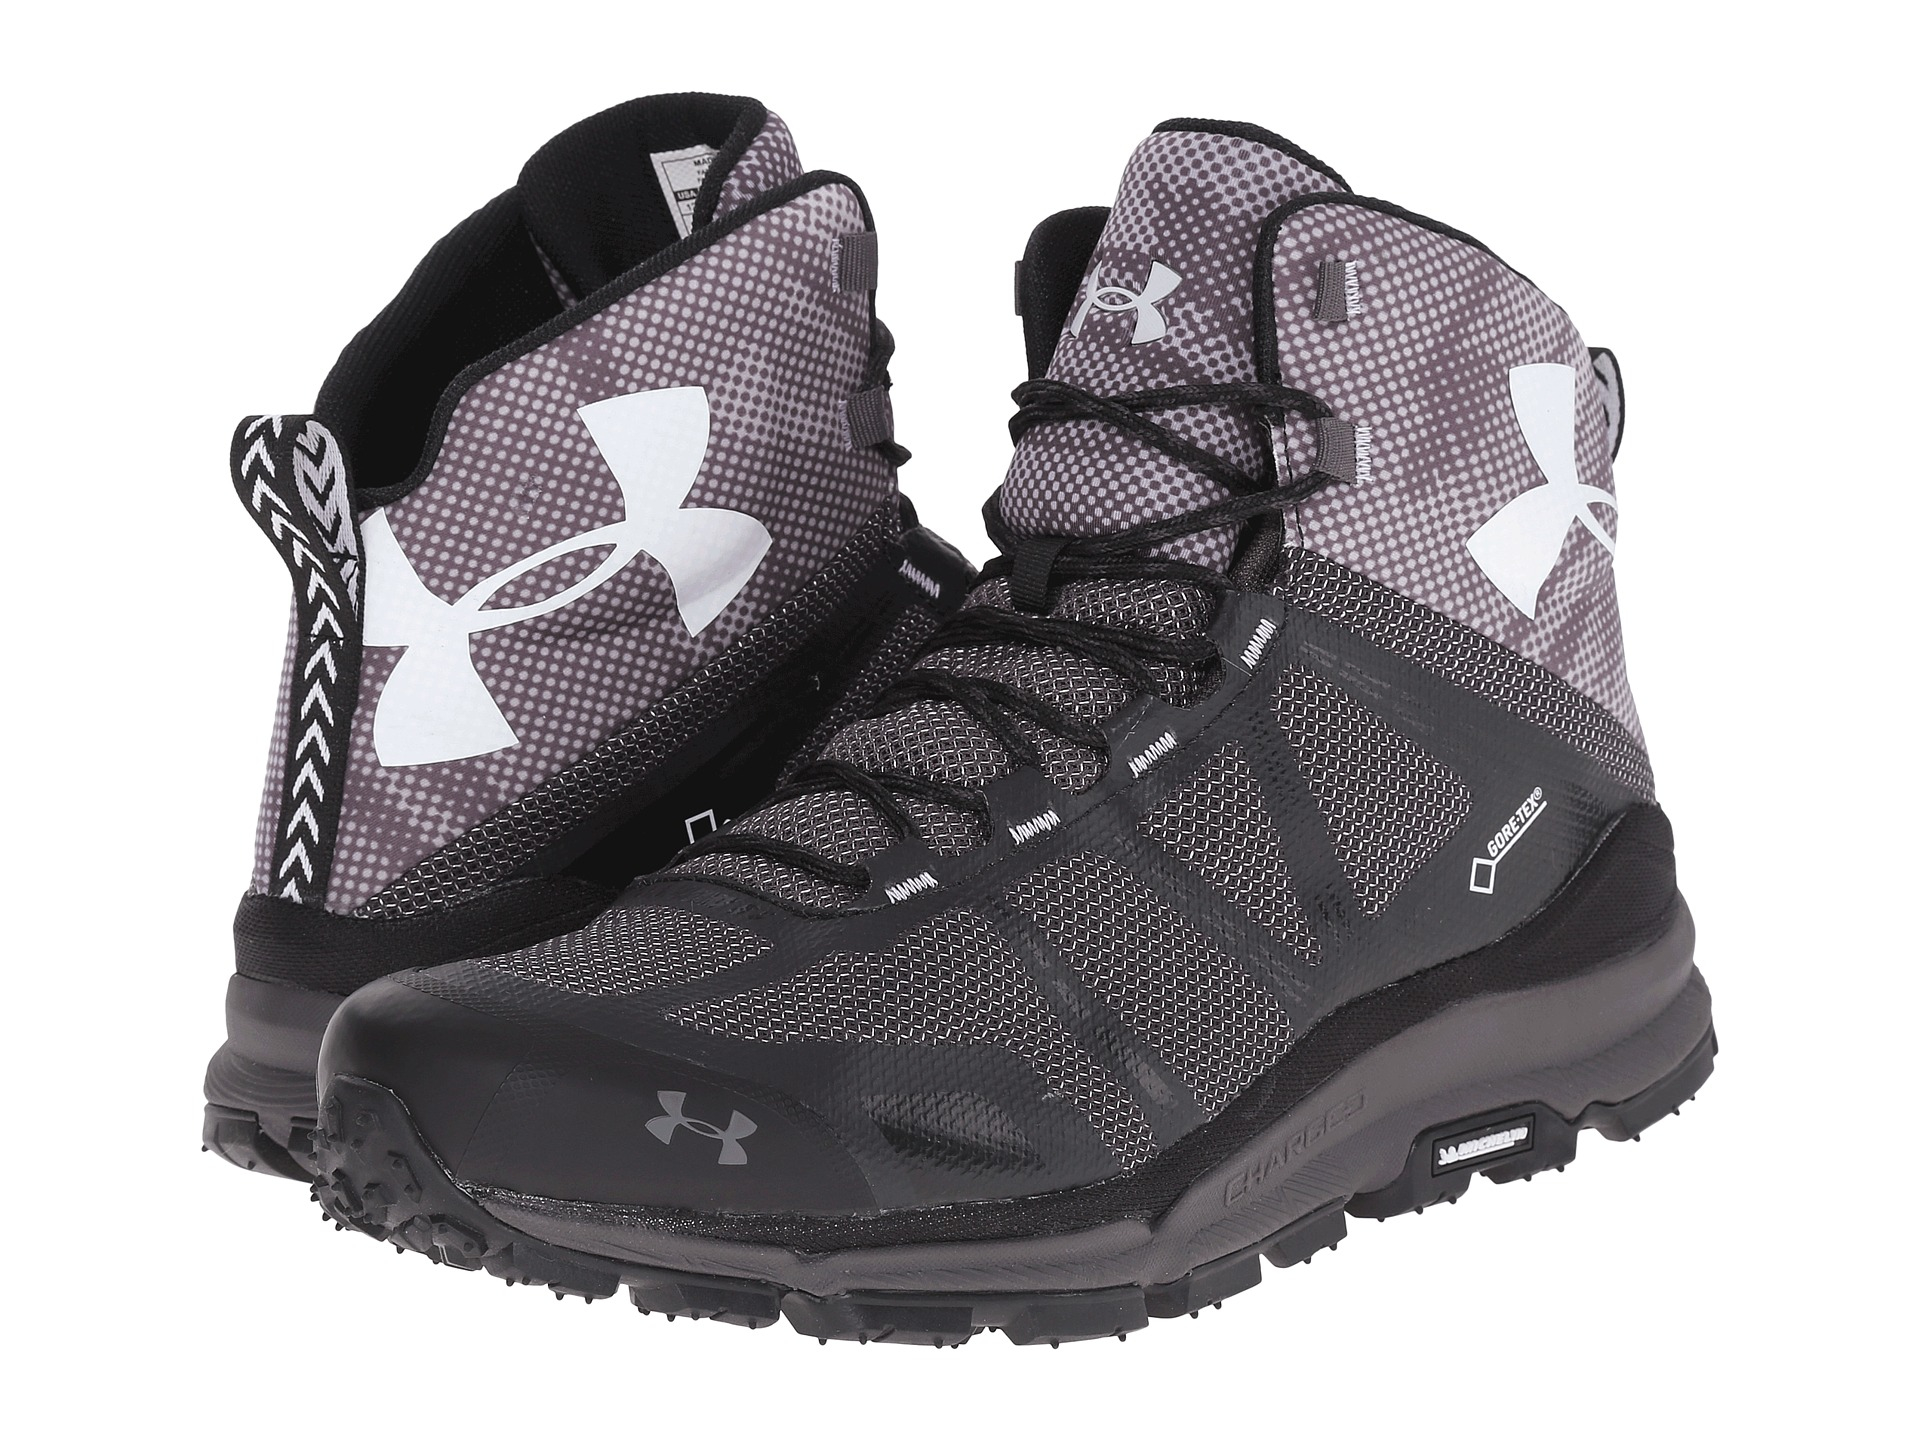 Men's Verge 2.0 Mid GTX